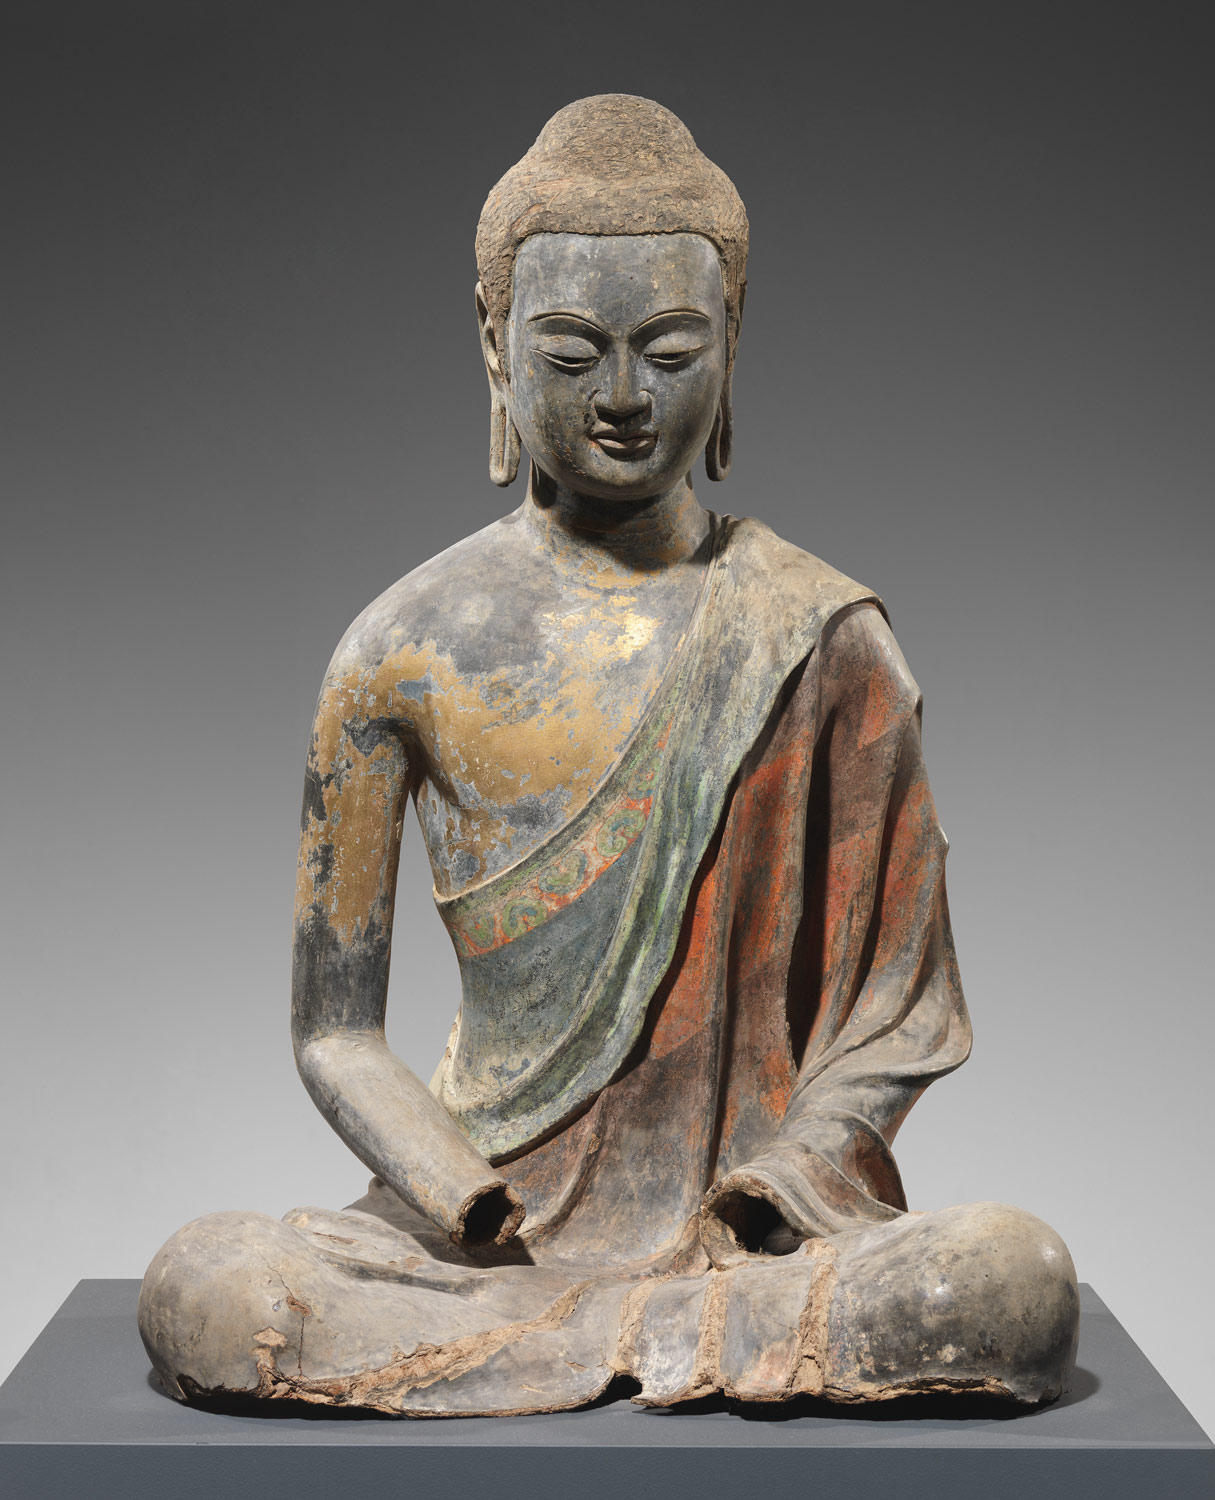 Ancient Chinese Buddhist Art Buddha, probably amitabha